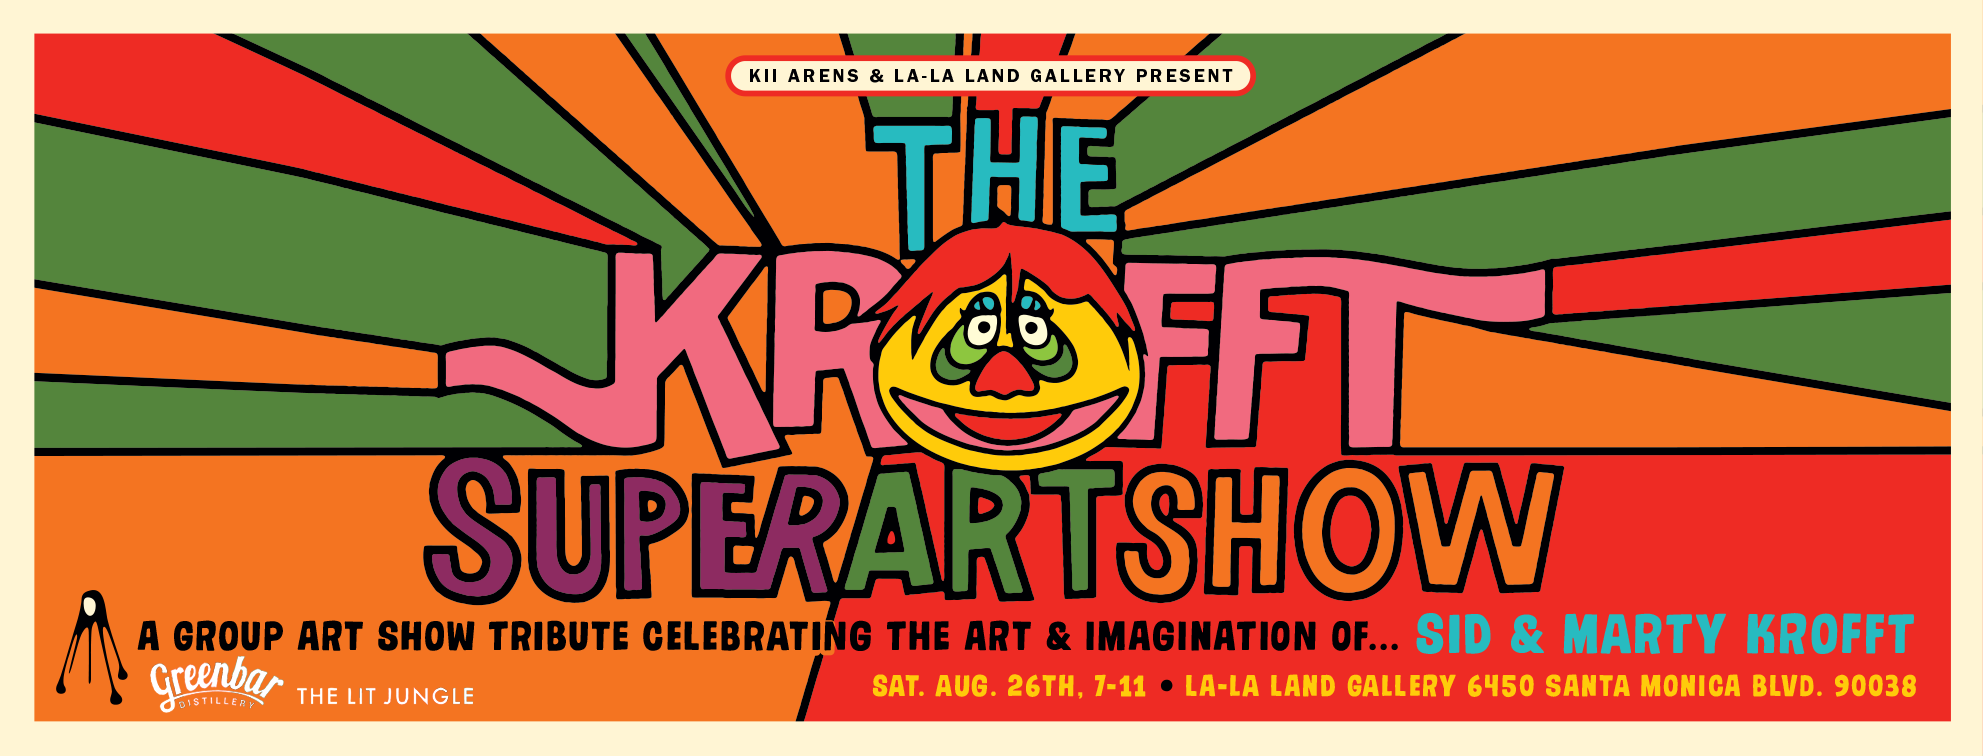 The Krofft Super Art Show - Be There!